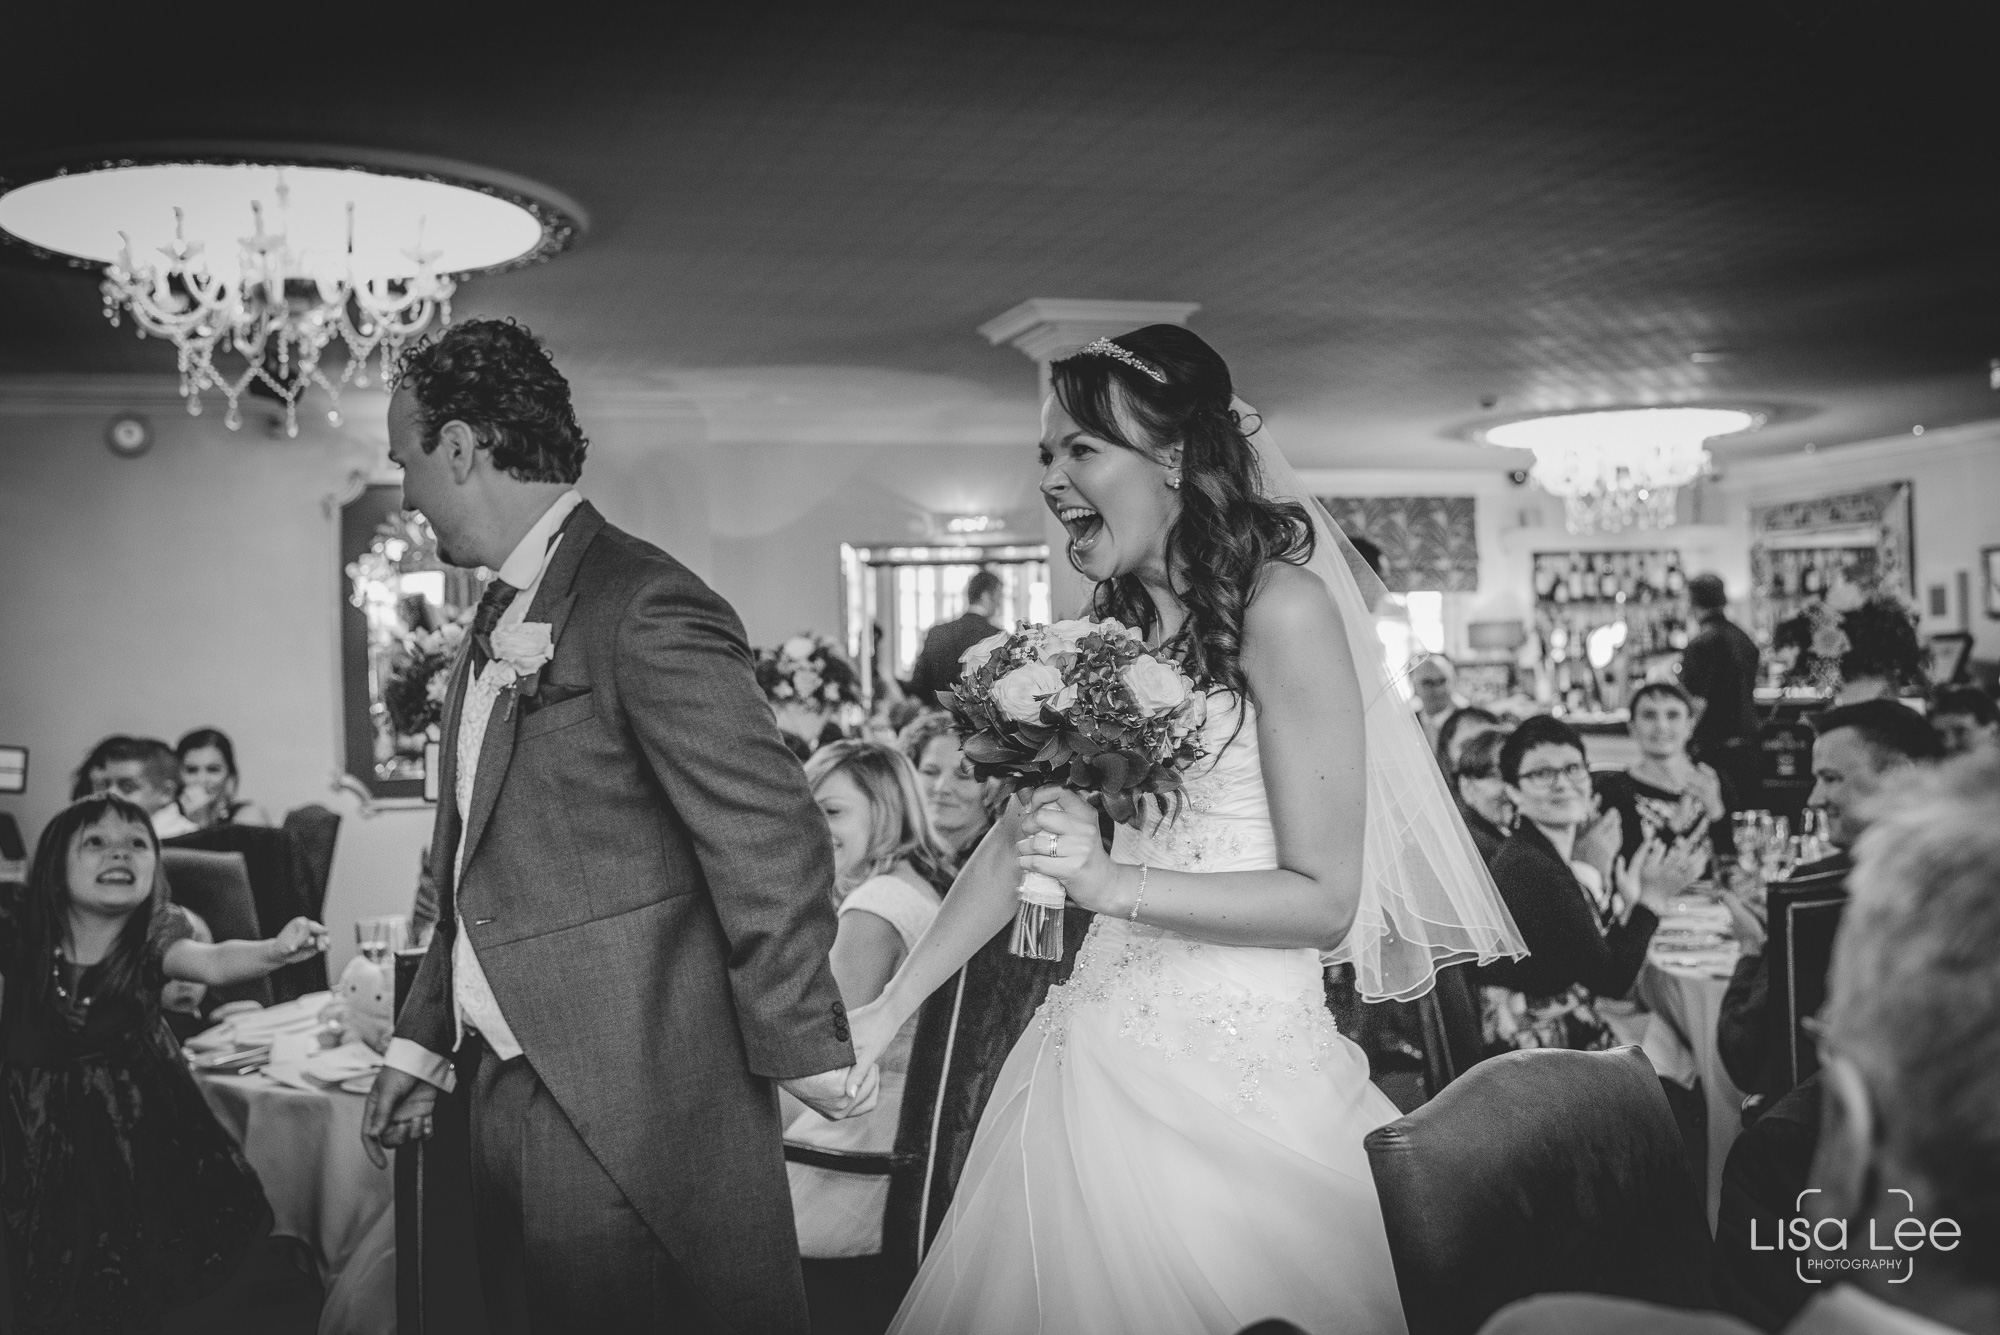 Lord-Bute-Hotel-Lisa-Lee-Documentary-Wedding-Photography-4.jpg